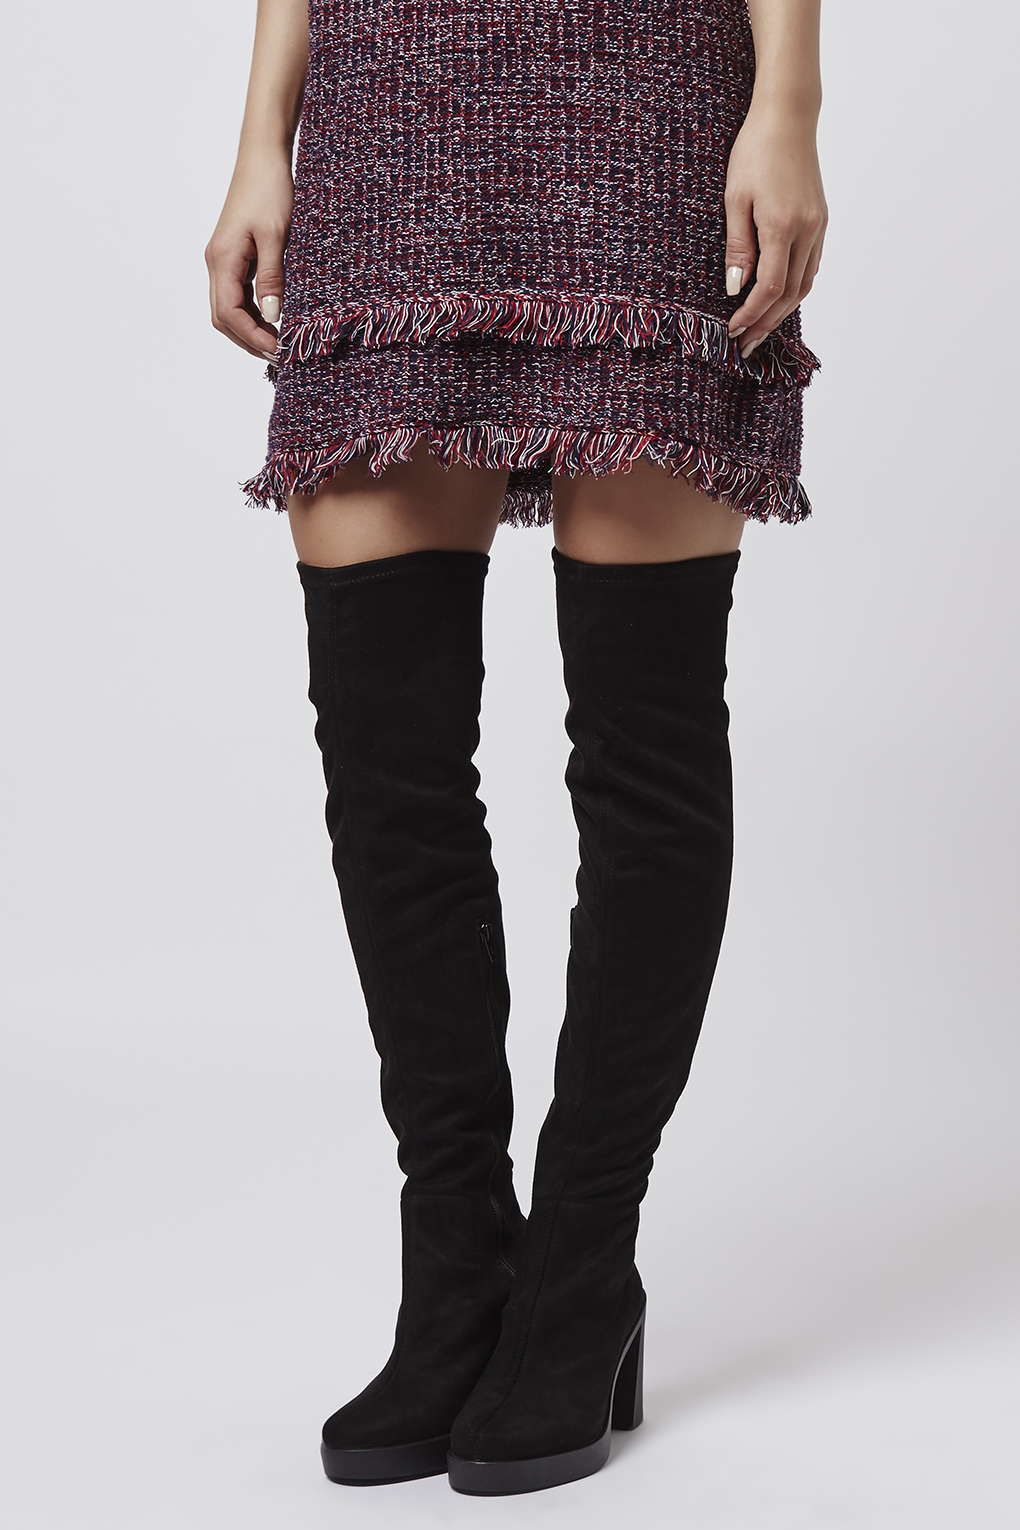 Stretch Over The Knee Boots - Cr Boot